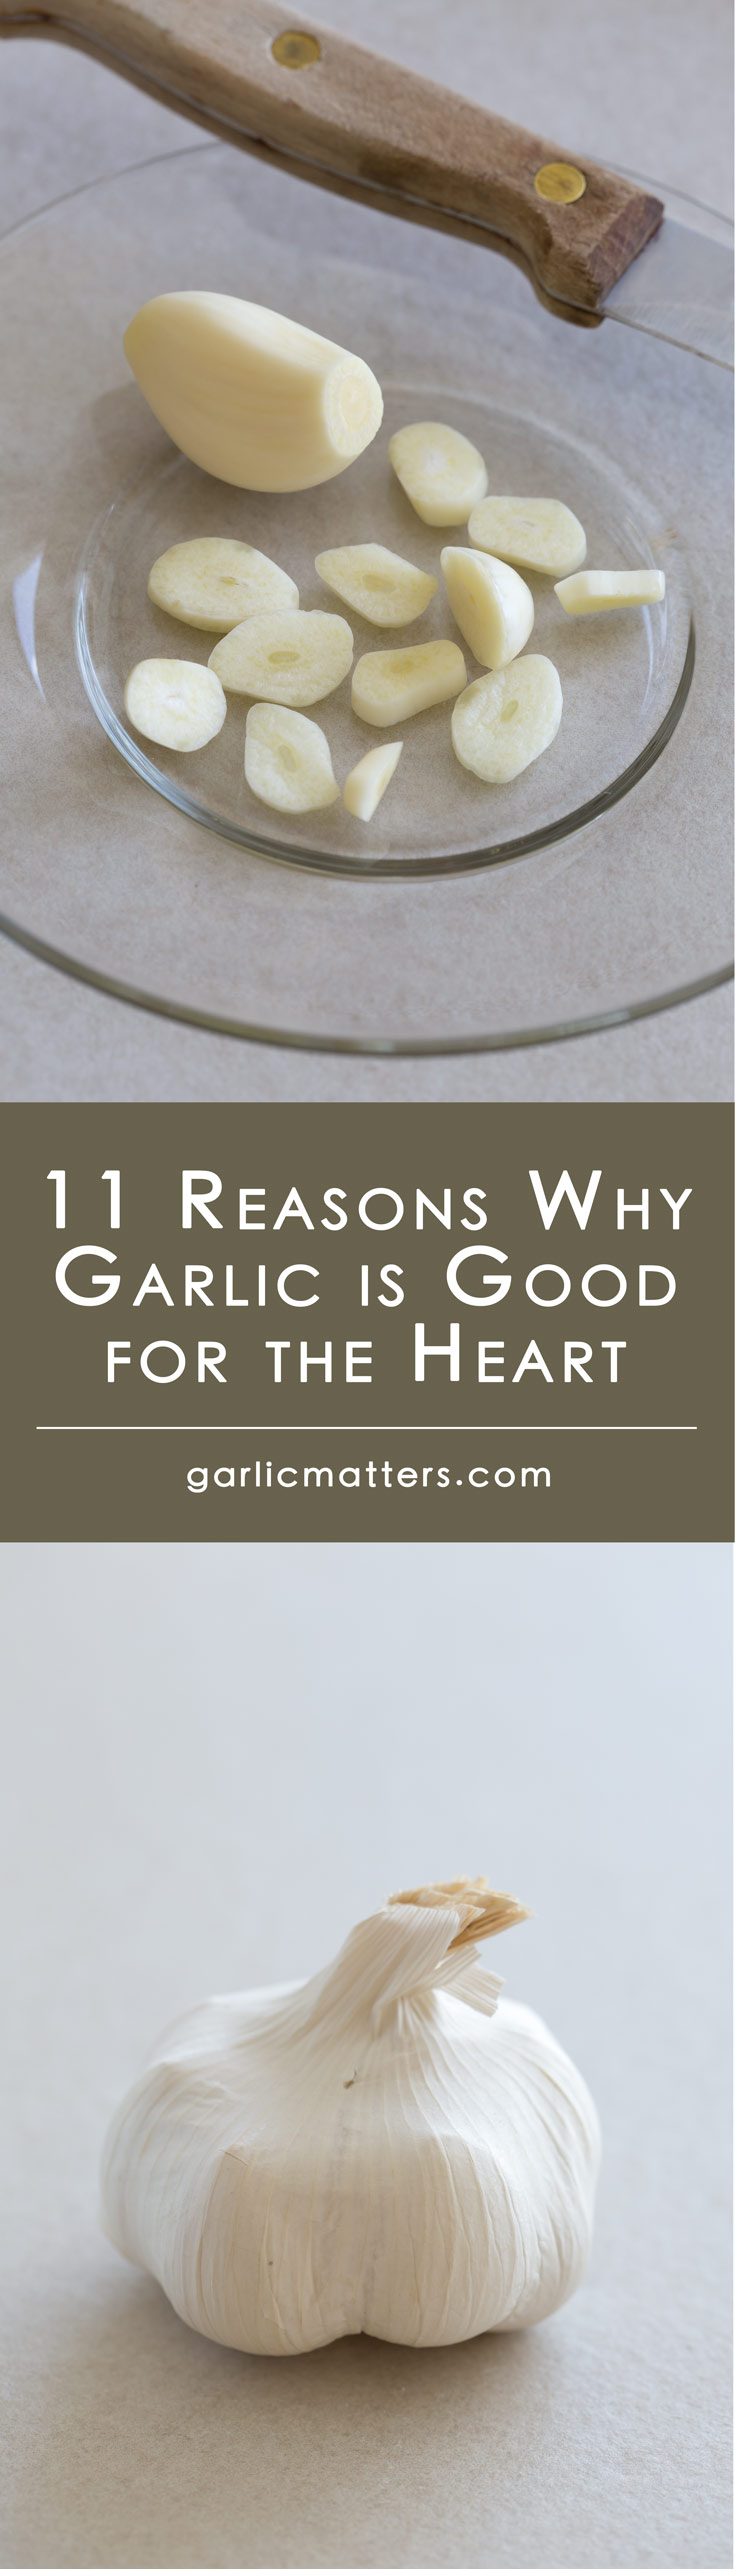 11 Reasons Why Garlic Is Good For The Heart  Garlic Matters-5477